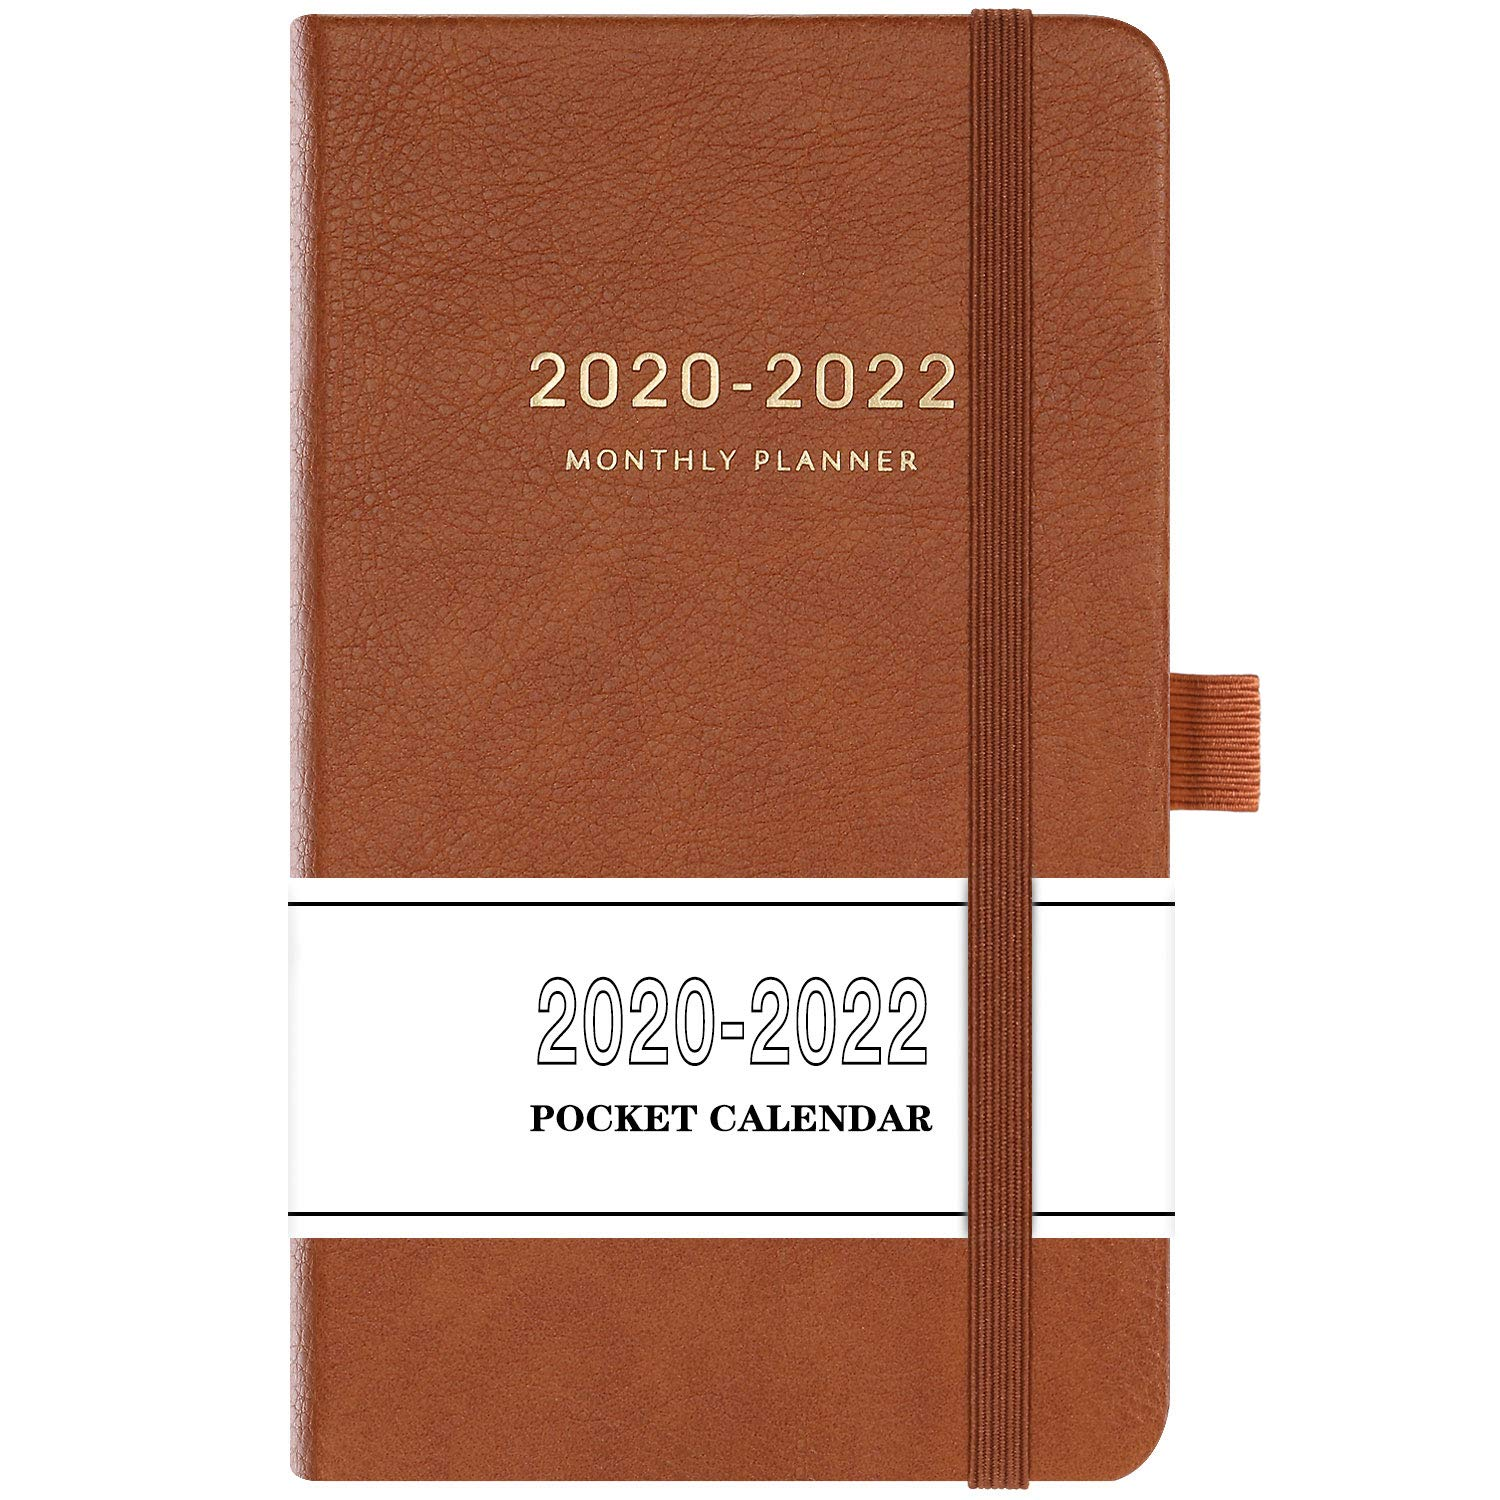 """2020-2022 Pocket Calendar - Monthly Pocket Planner (36-Month) with 63 Notes Pages, 3.8"""" x 6.3"""", 3 Year Monthly Planner with Contacts, Holidays and Pen Holder, Back Pocket, Gift Box - Brown"""